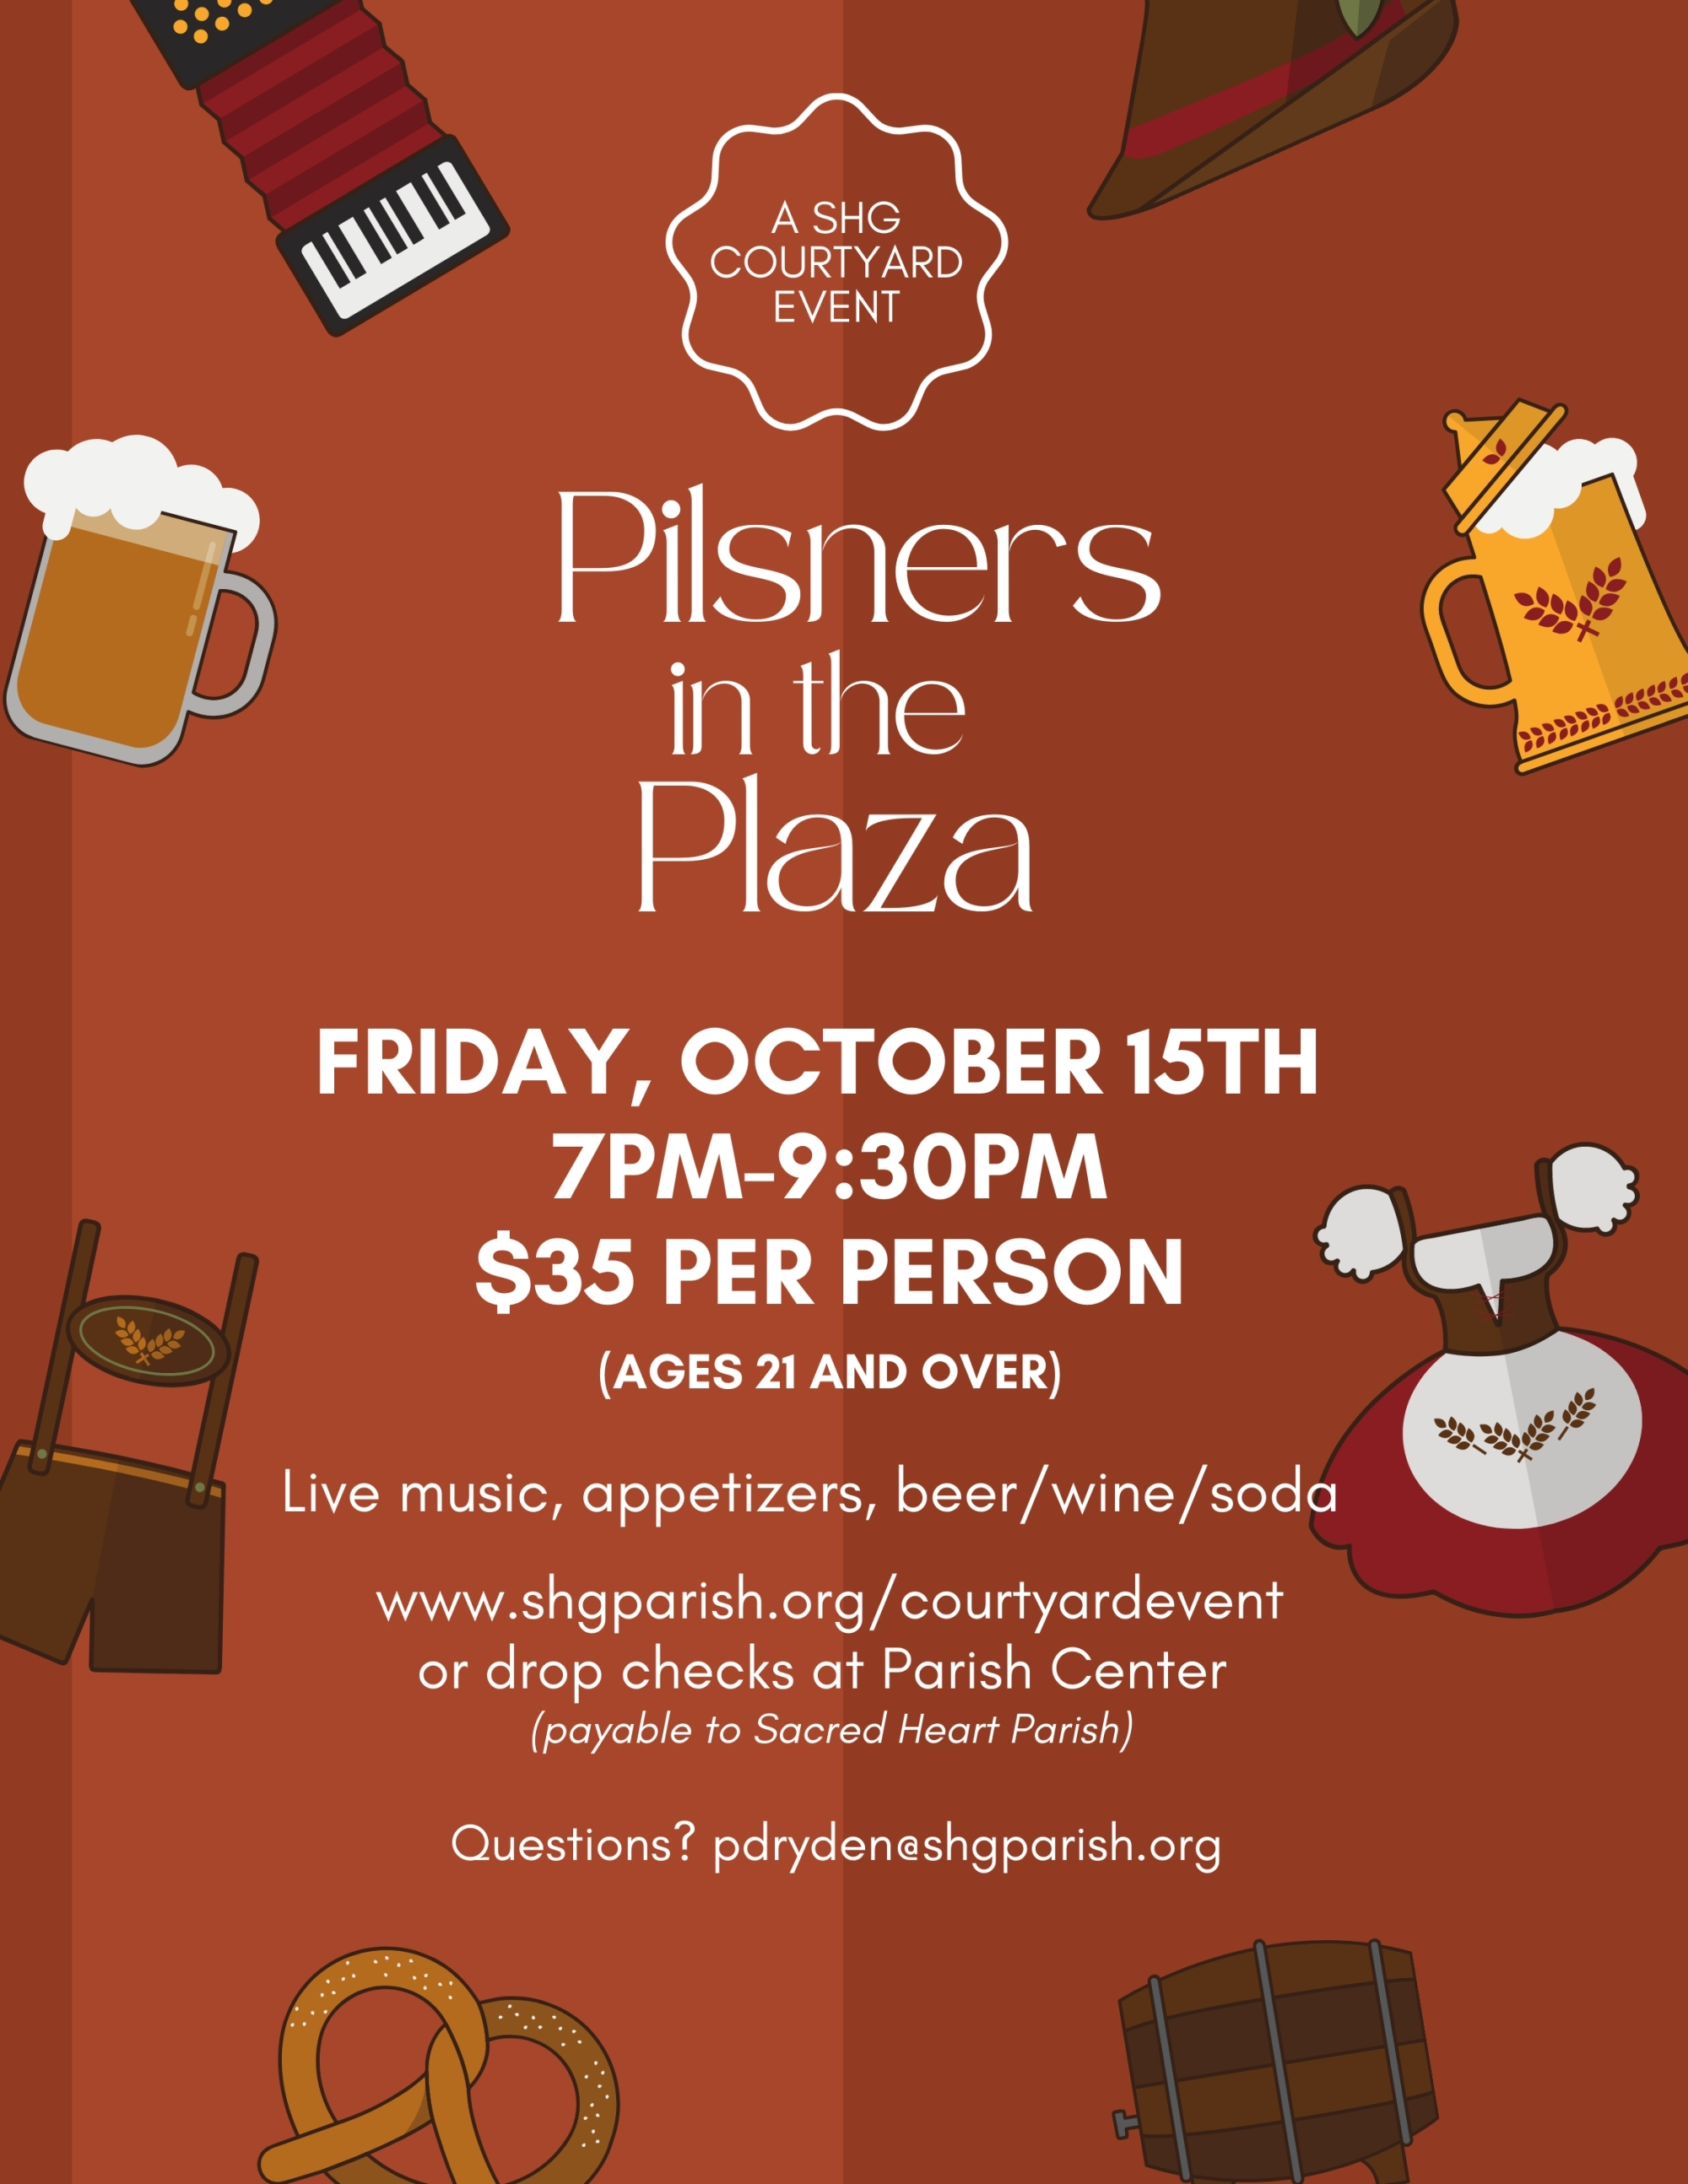 Courtyard Event: Pilsners in the Plaza